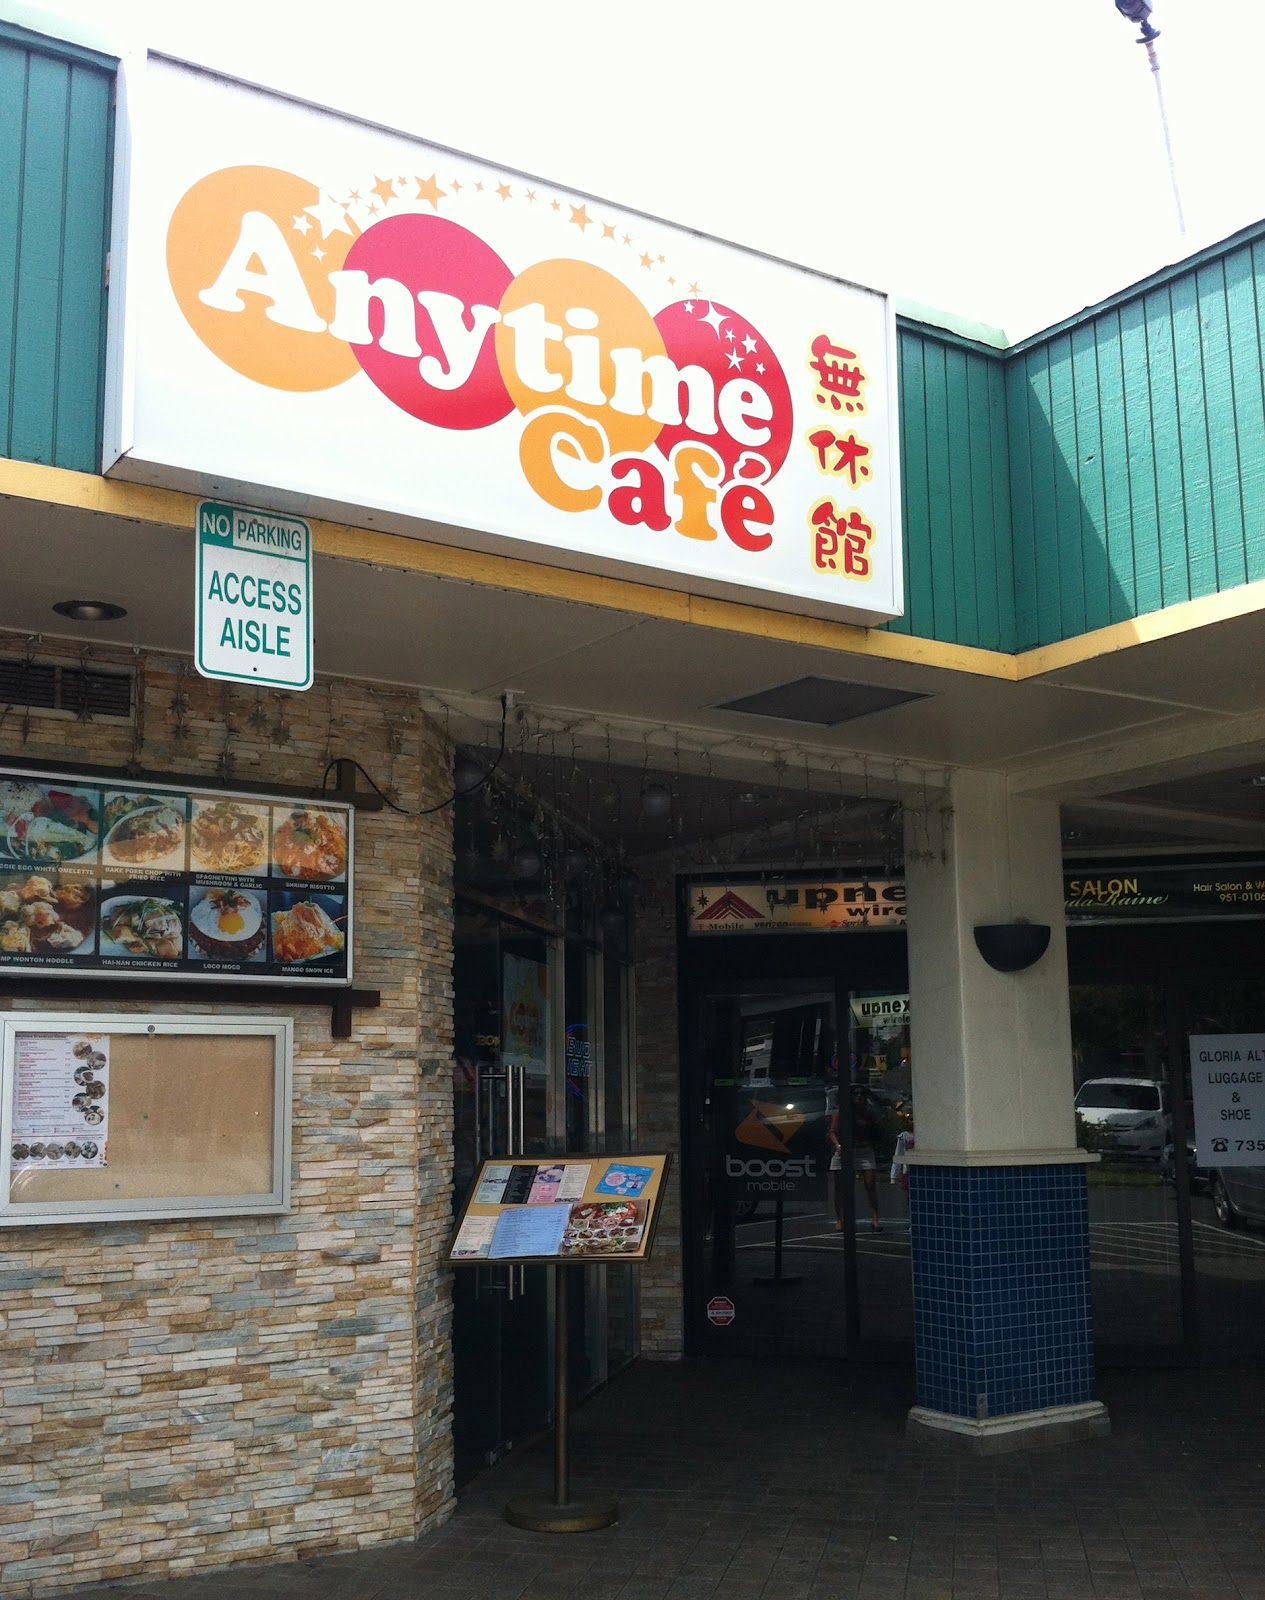 Entrance of Anytime Cafe.